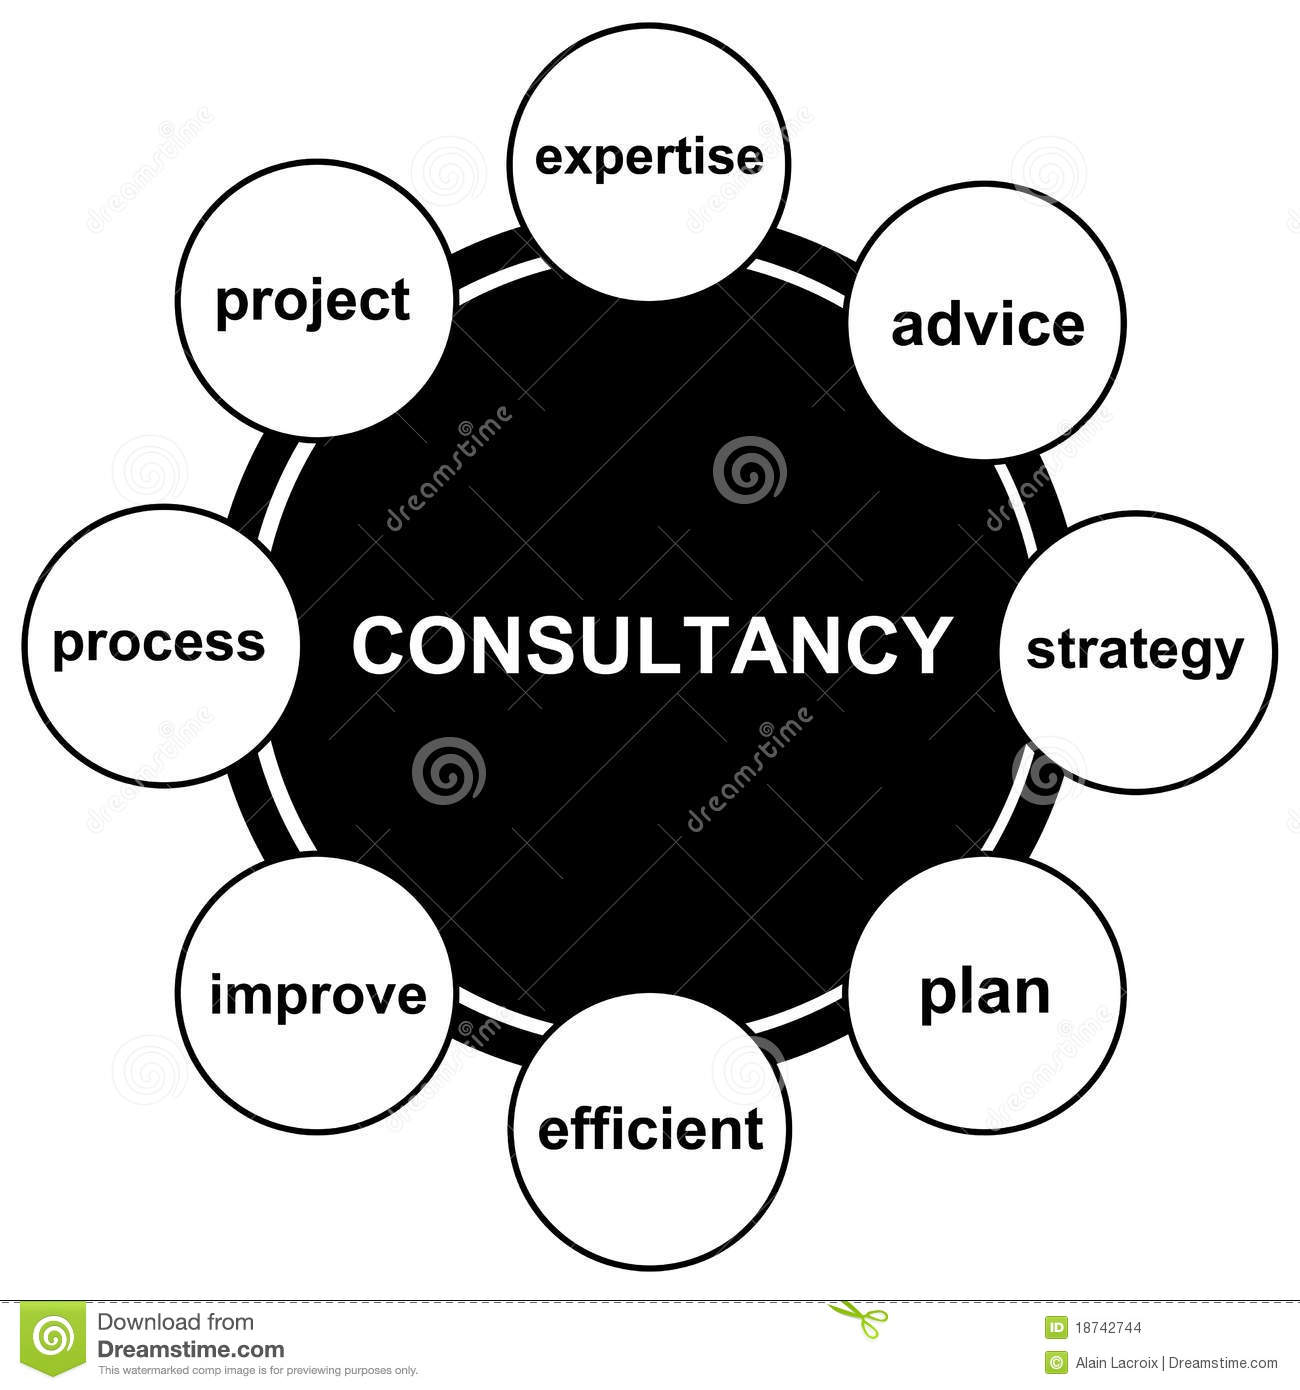 A Sample IT Consulting Firm Business Plan Template